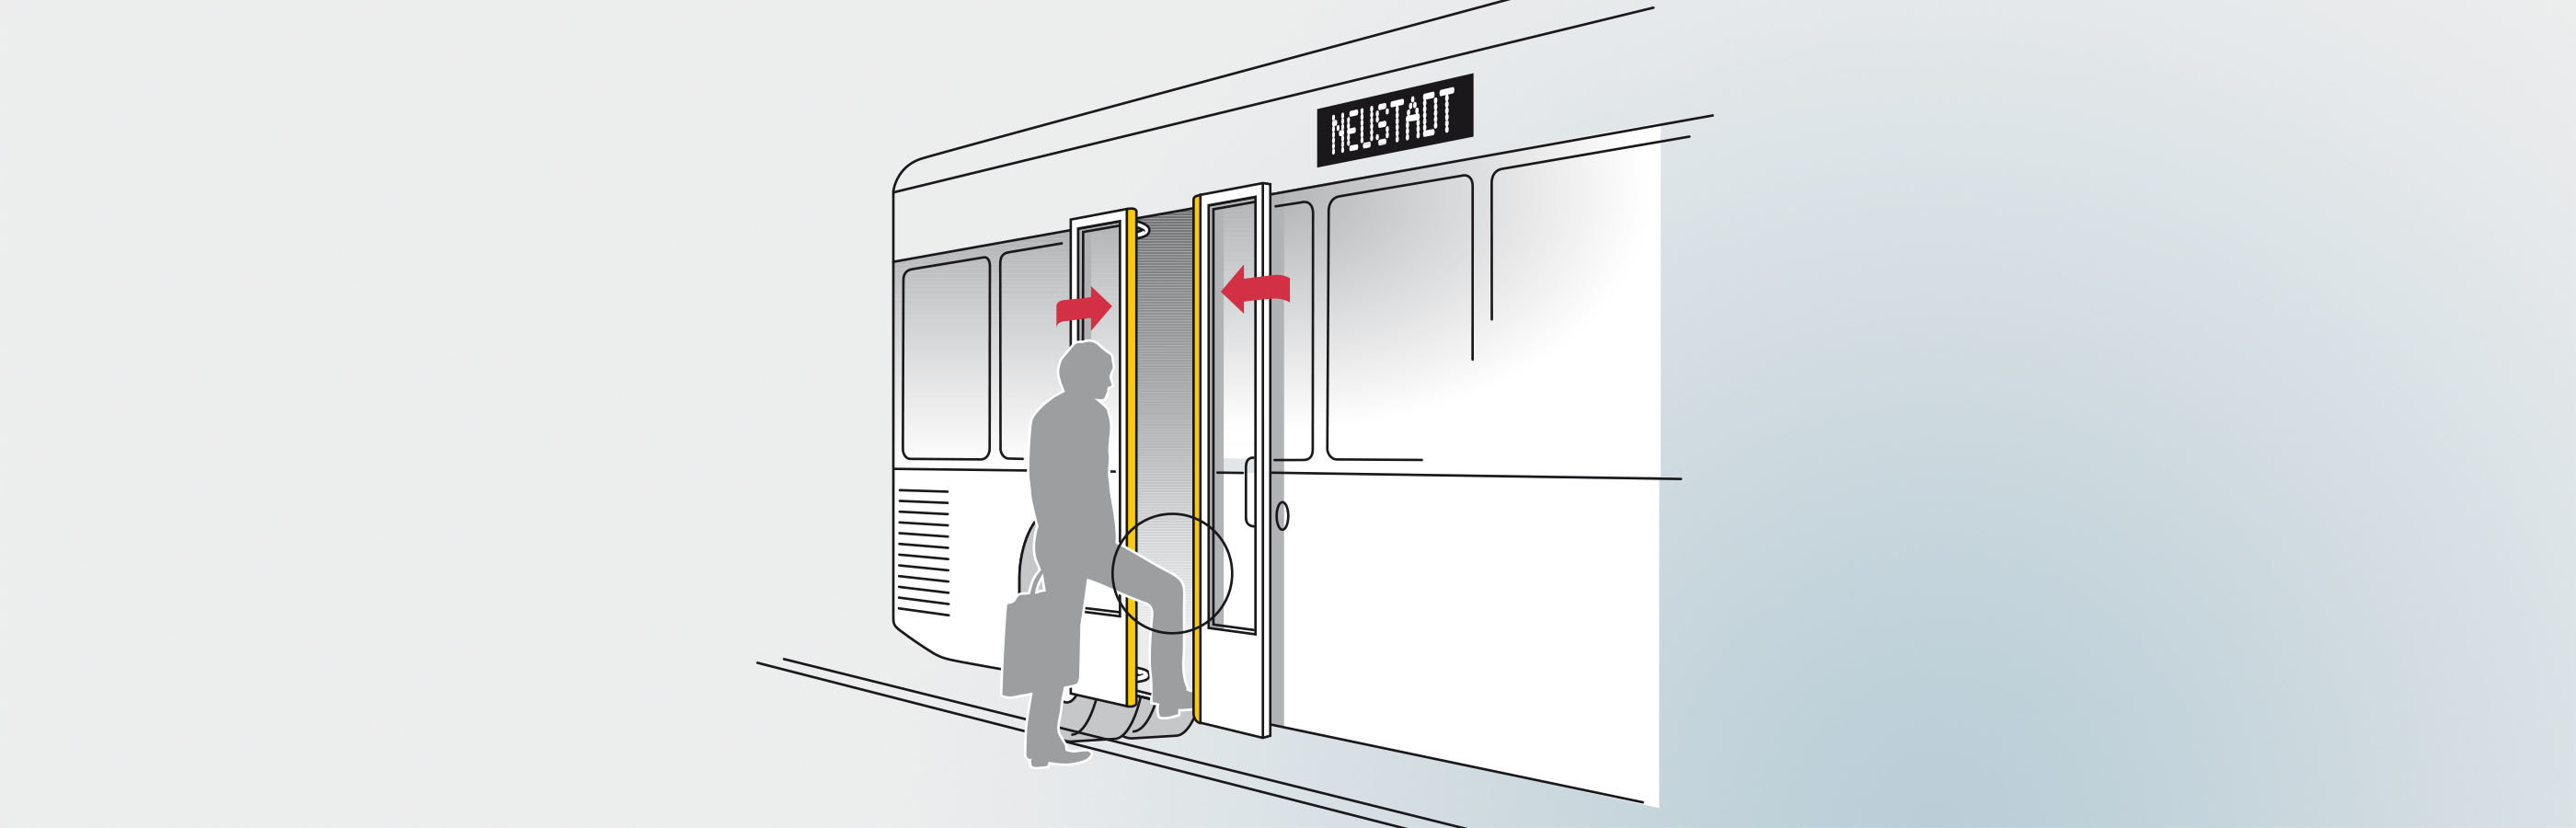 Pressure wave switch secure the entrance in public transport vehicles